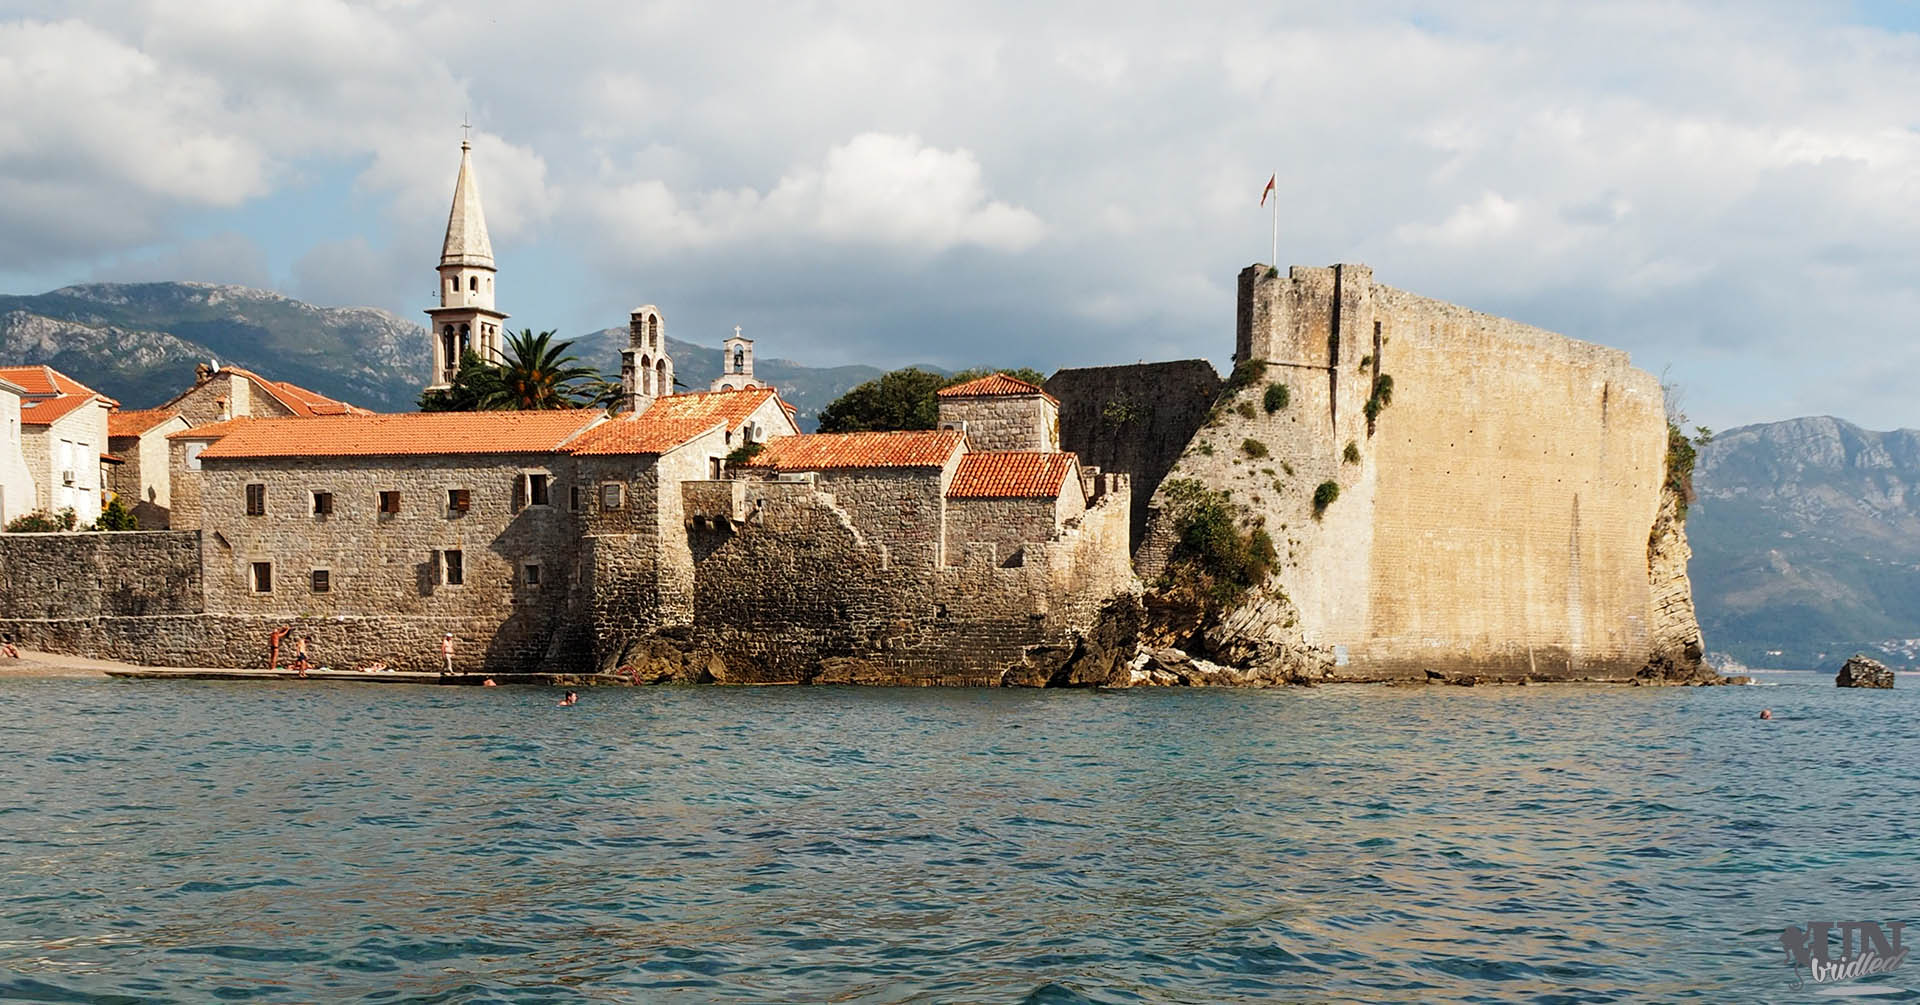 Mediterranean old town at the coast - Budva, Montenegro